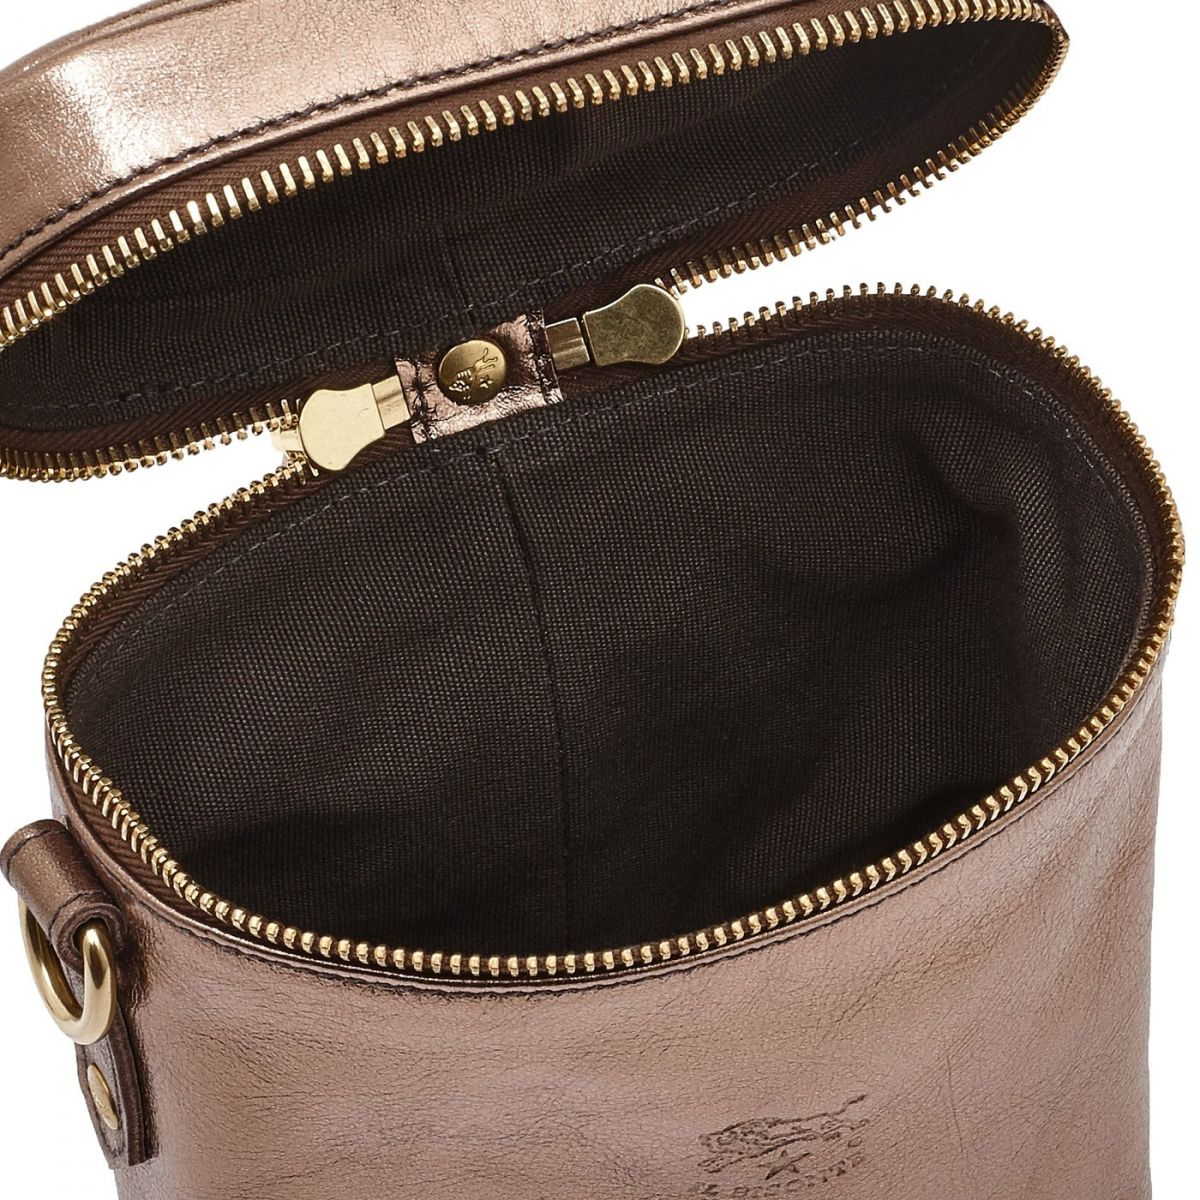 Women's Crossbody Bag Pratolino in Metallic Leather BCR084 color Metallic Bronze | Details